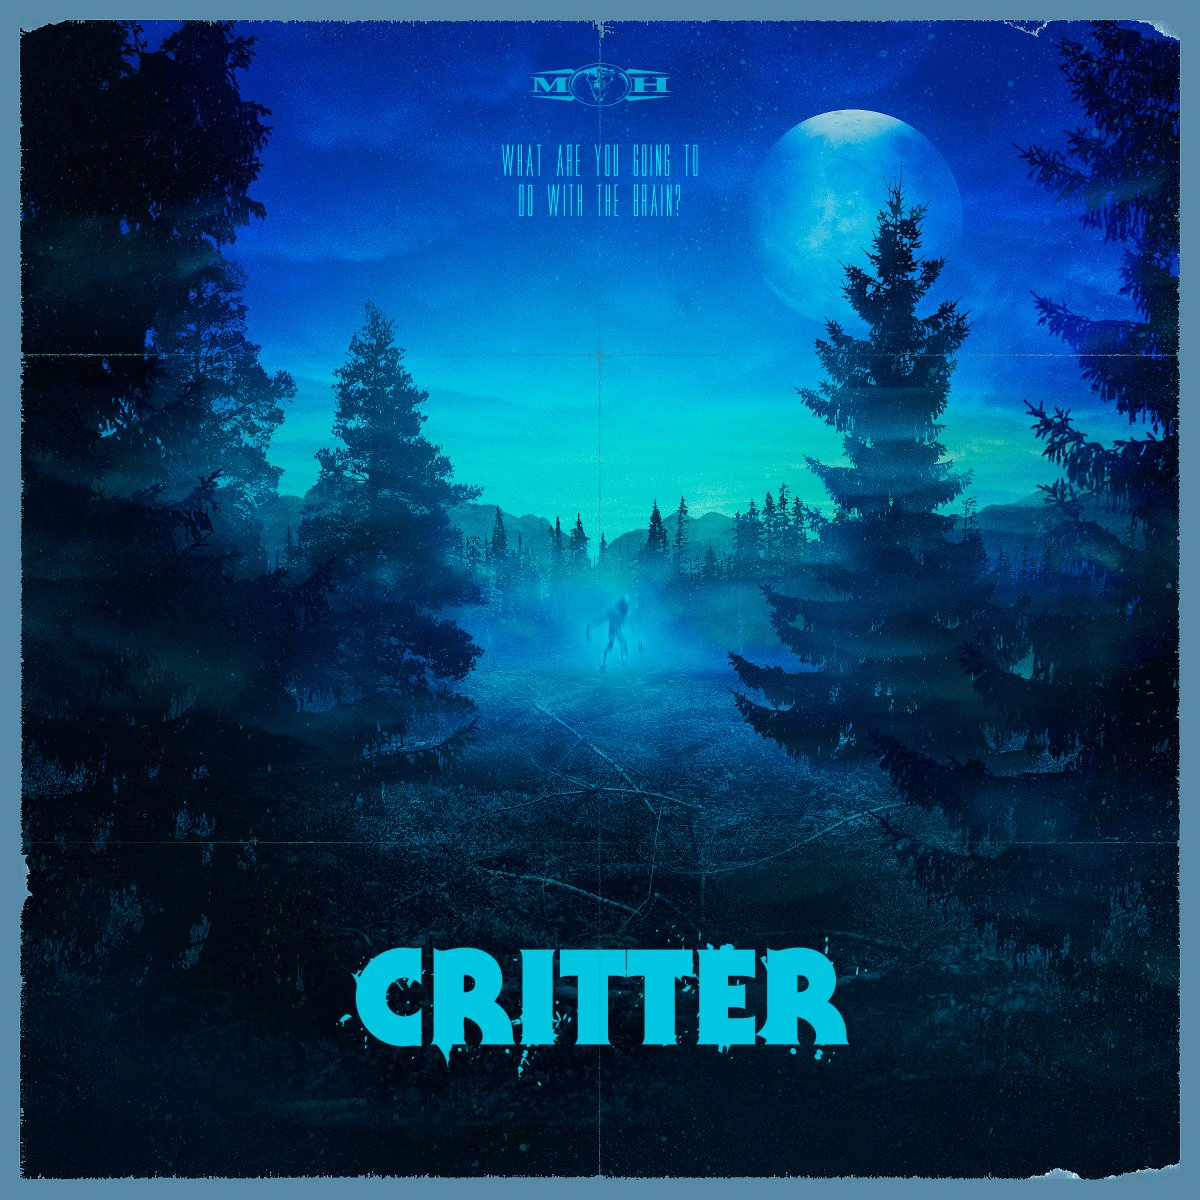 """CRITTER"" out now on all portals 😈 Check: moh.lnk.to/Critter https://t.co/tBvuV74aE4"